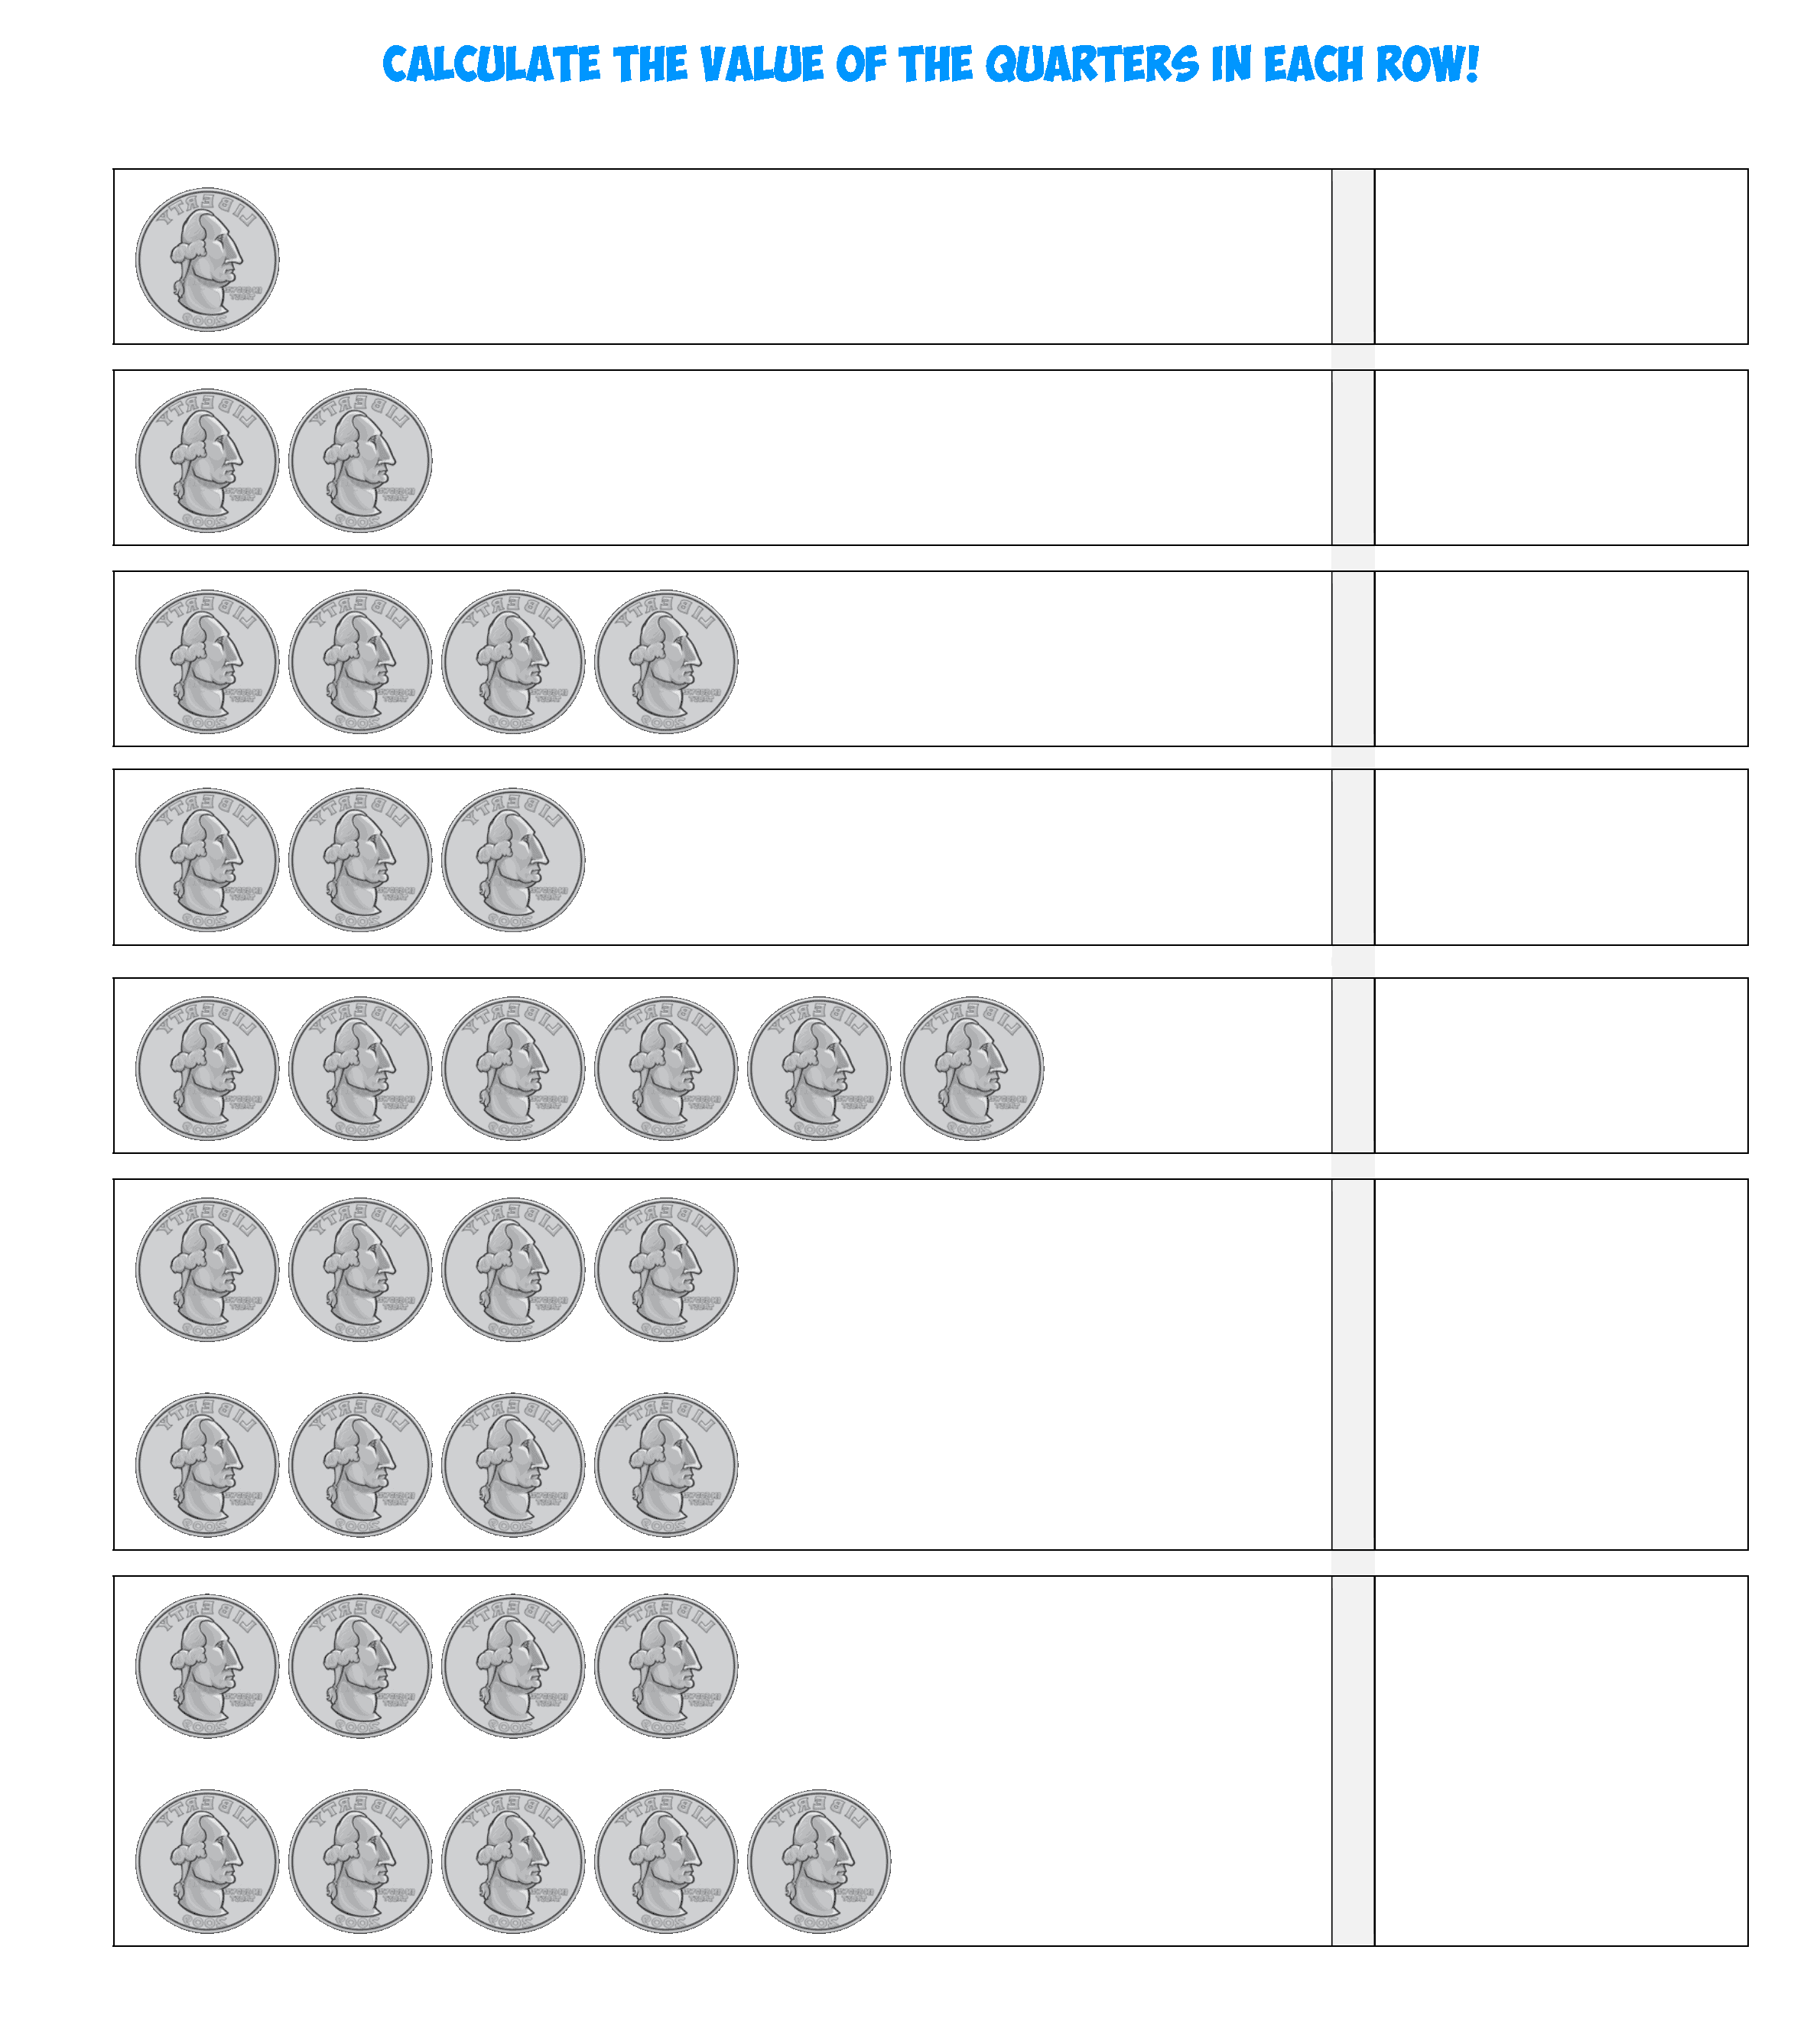 Quarters Counting Sheet